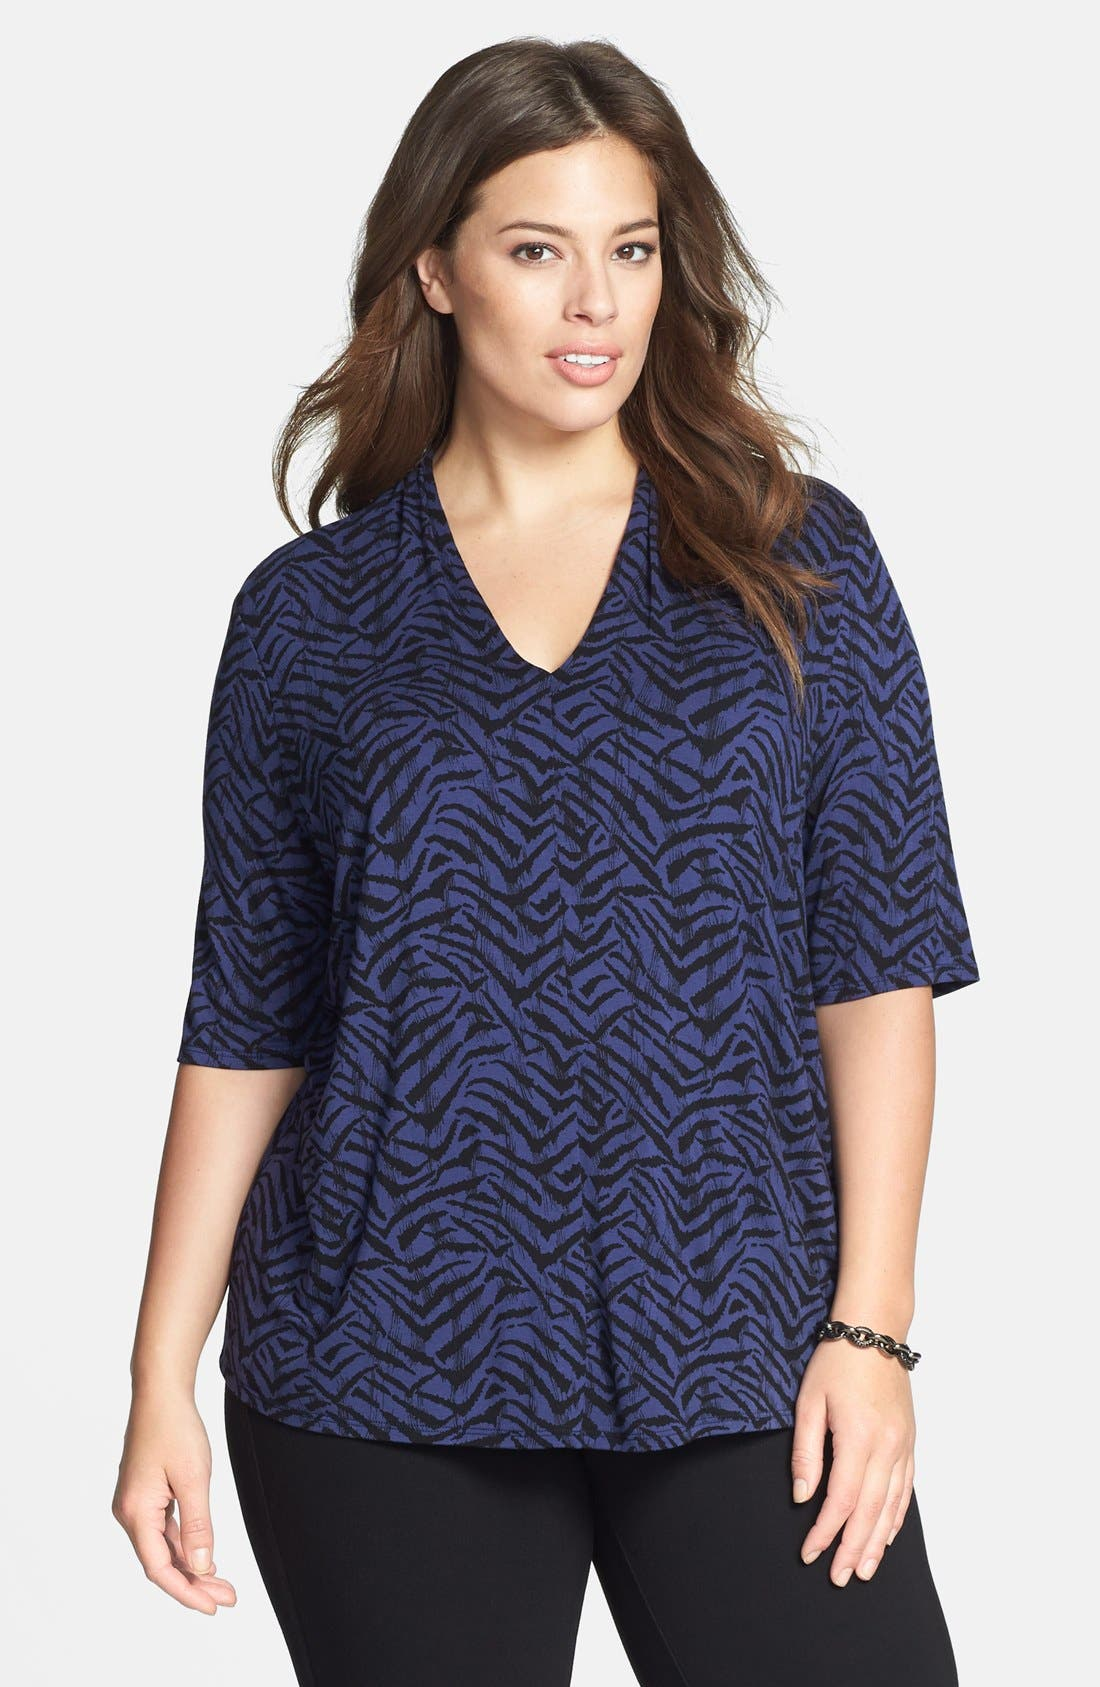 Alternate Image 1 Selected - Sejour Elbow Sleeve V-Neck Jersey Top (Plus Size)